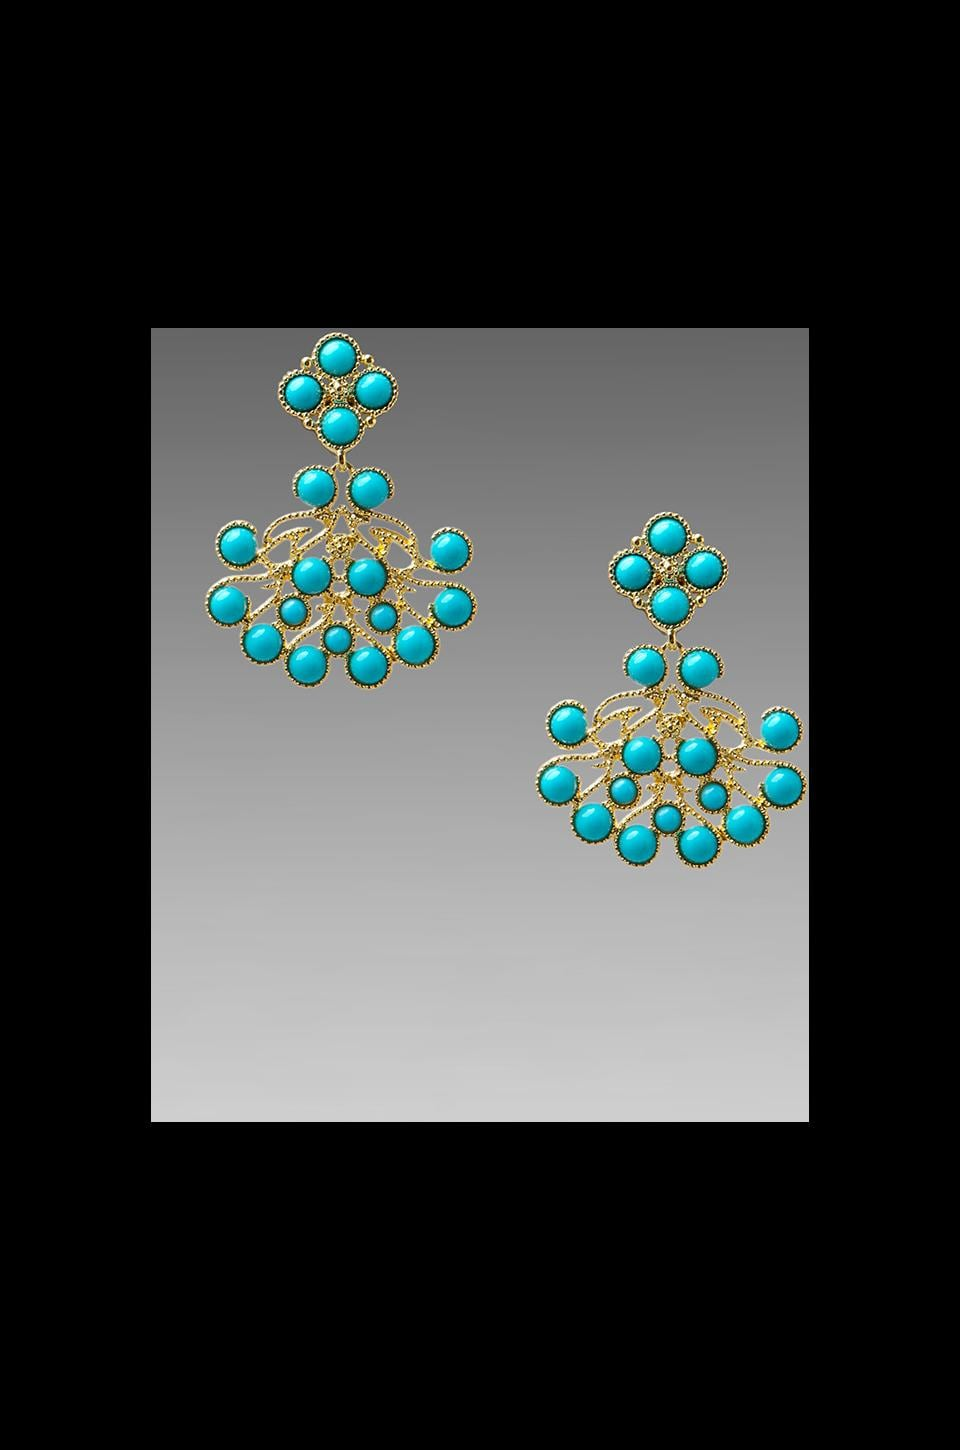 Kenneth Jay Lane Cab Earring in Gold/Turquoise